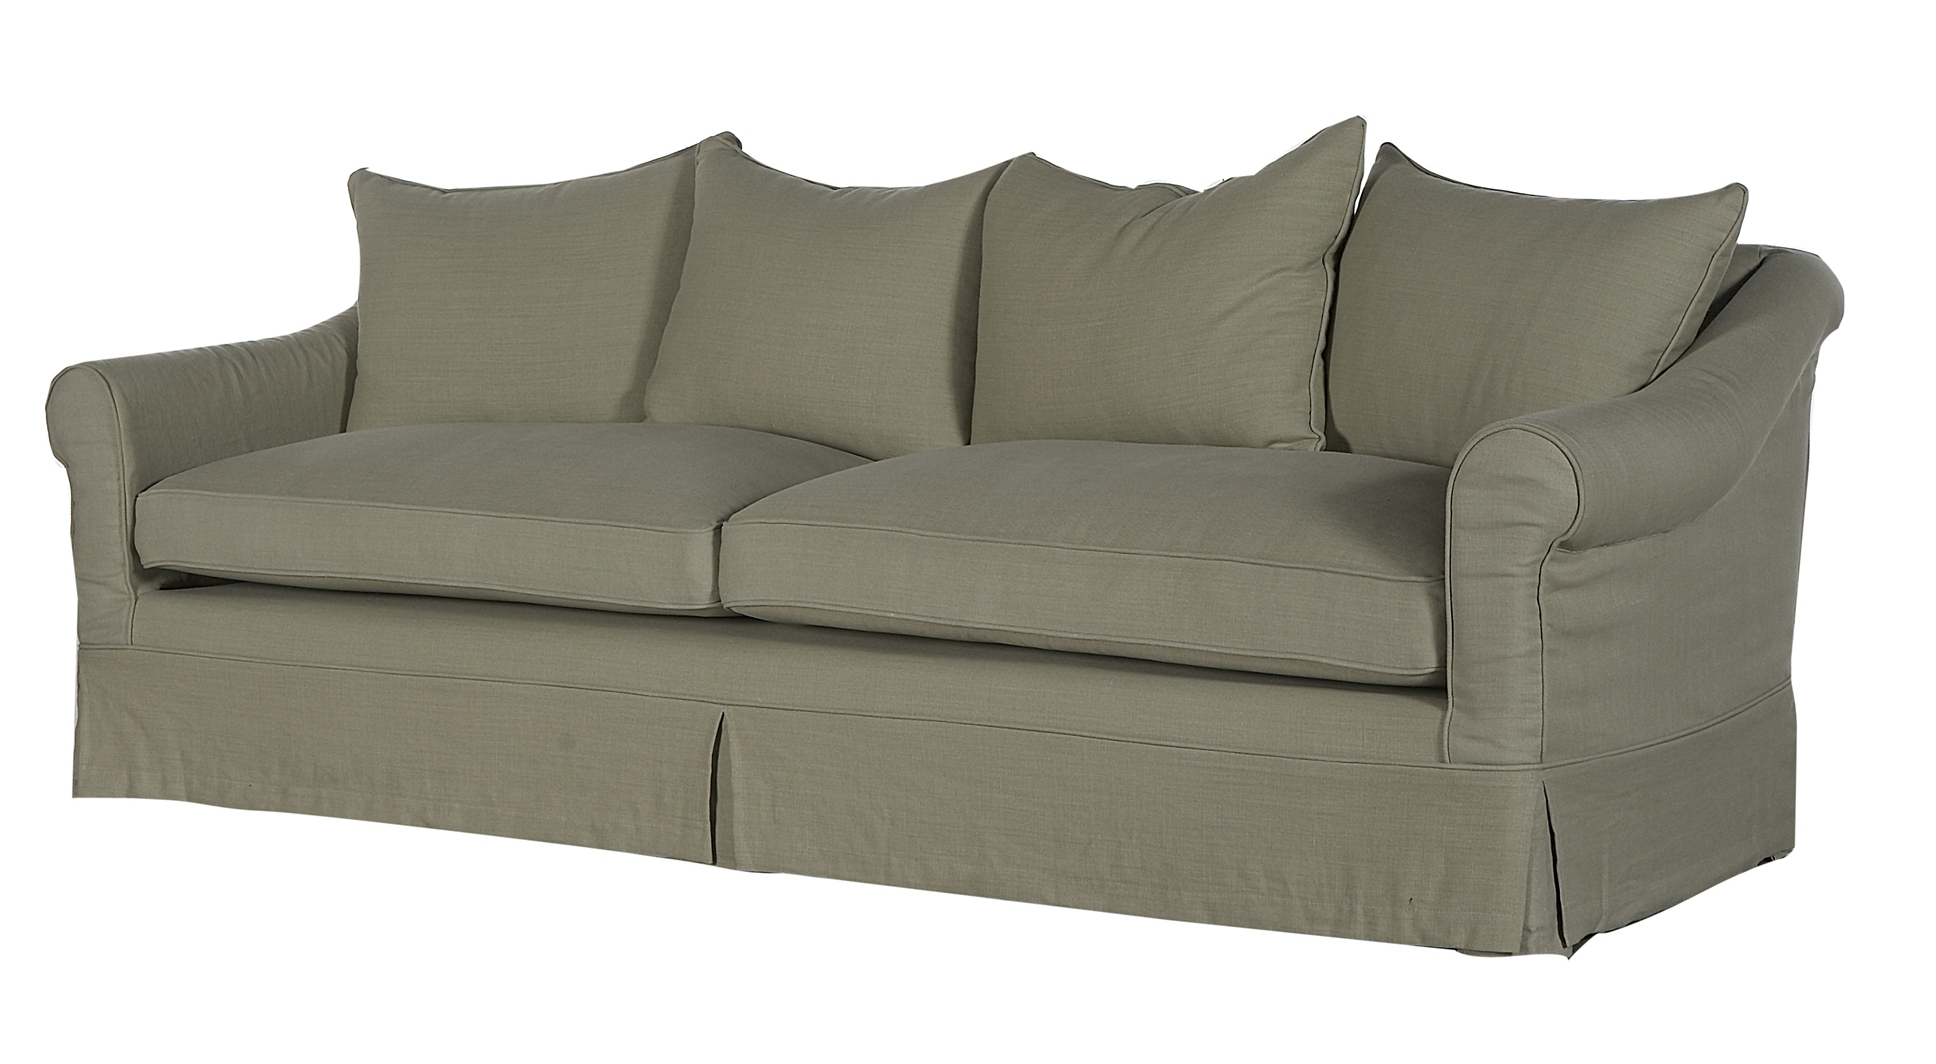 Well Liked Sofas With Removable Cover Intended For Sofa Design: Simple Sofa Removable Covers Ideas Sofas With (View 6 of 20)